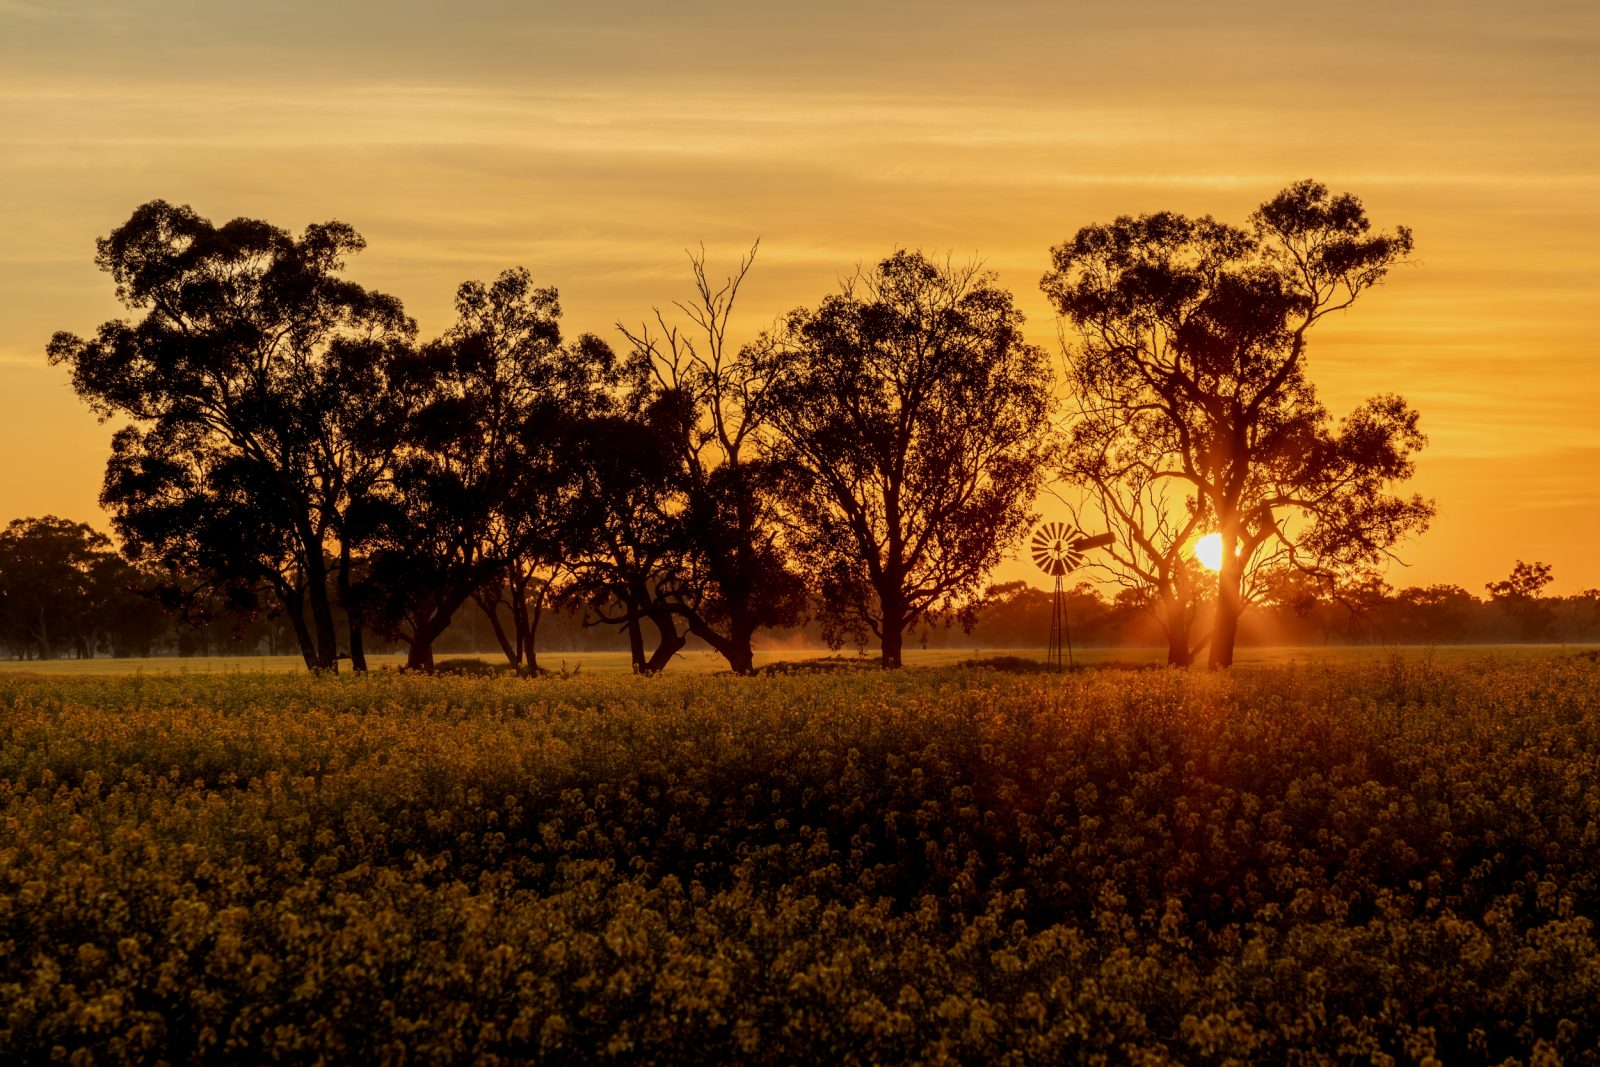 A Sunburnt Country